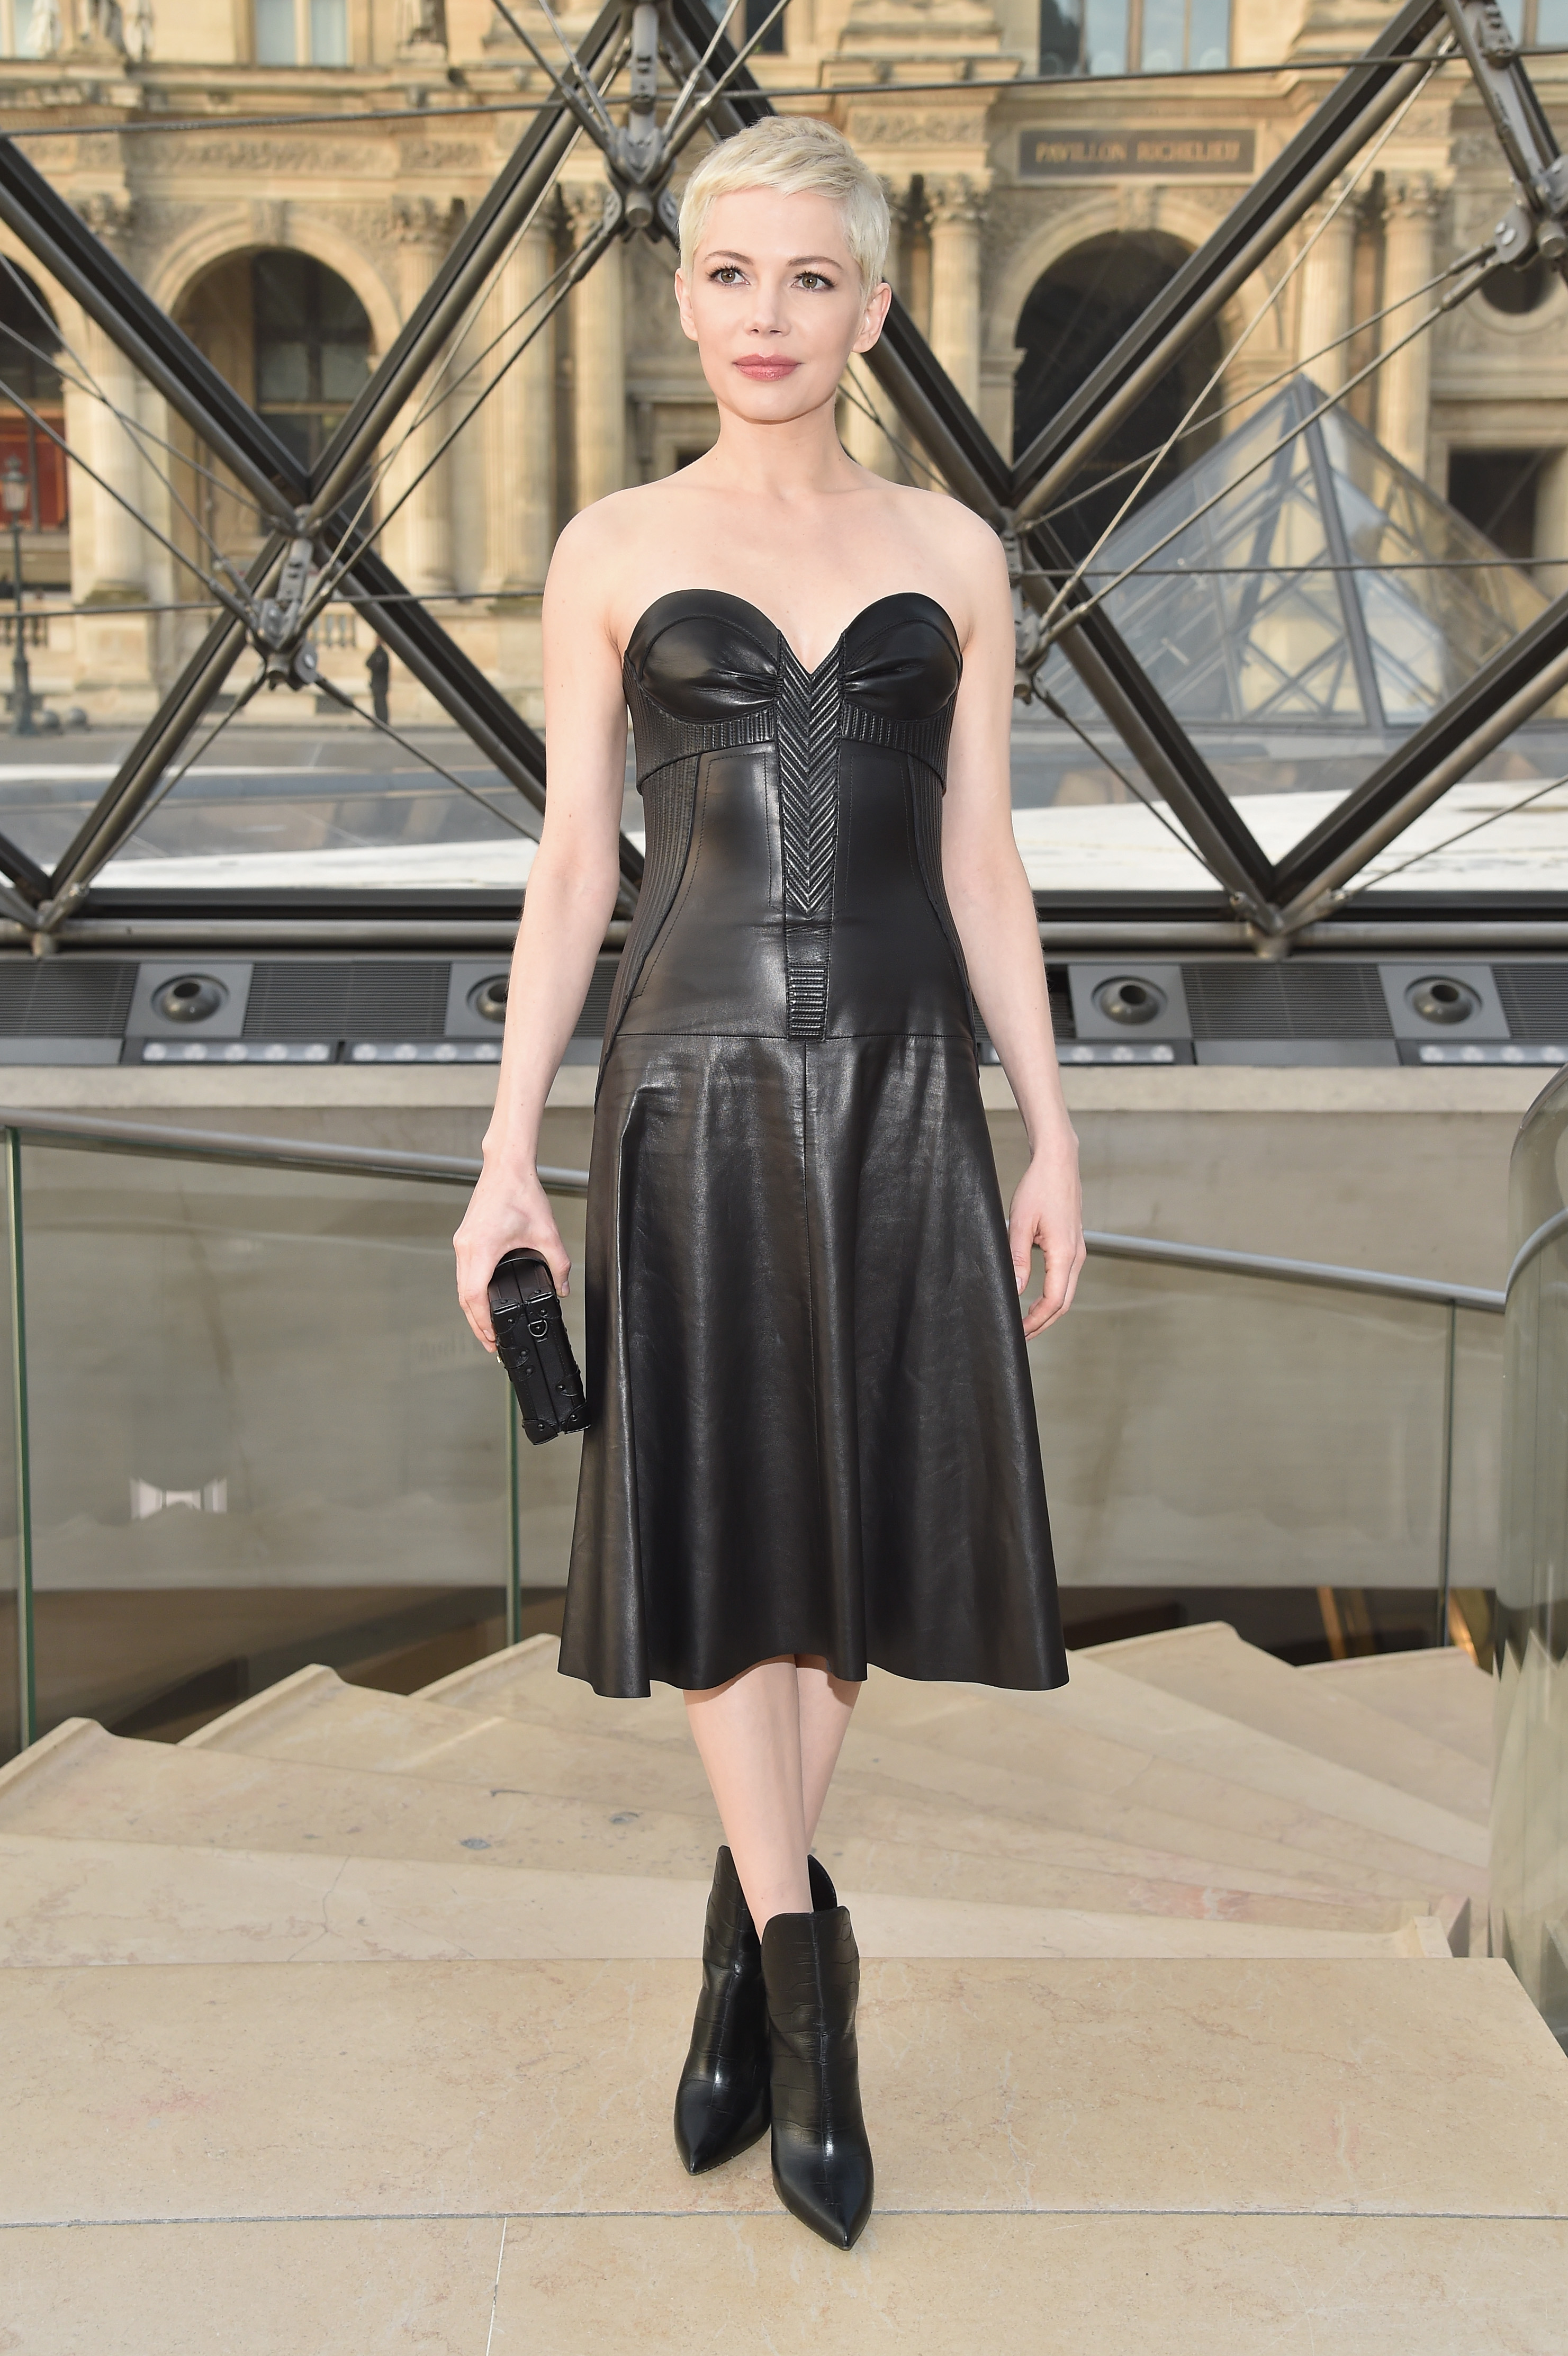 Michelle Williams Leather Dress Makes Her Look Like A